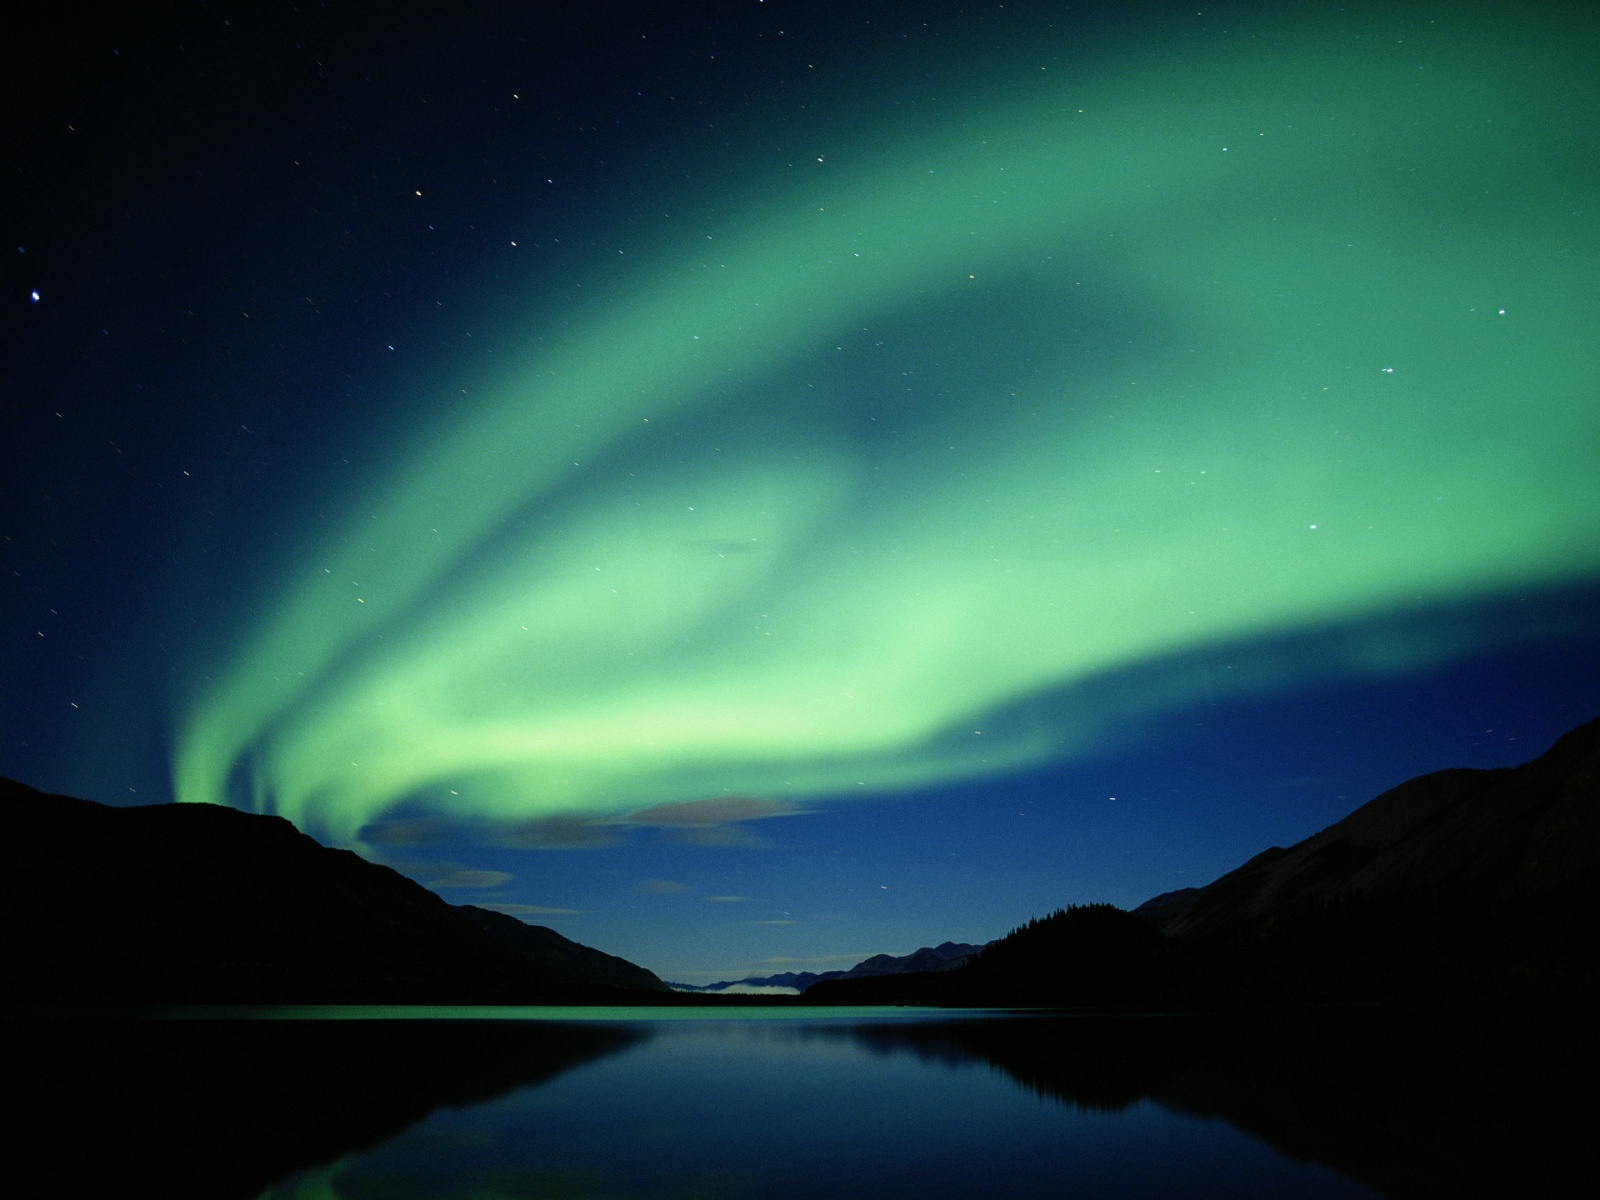 1600x1200 aurora sky desktop pc and mac wallpaper - Desktop wallpaper 1600x1200 ...